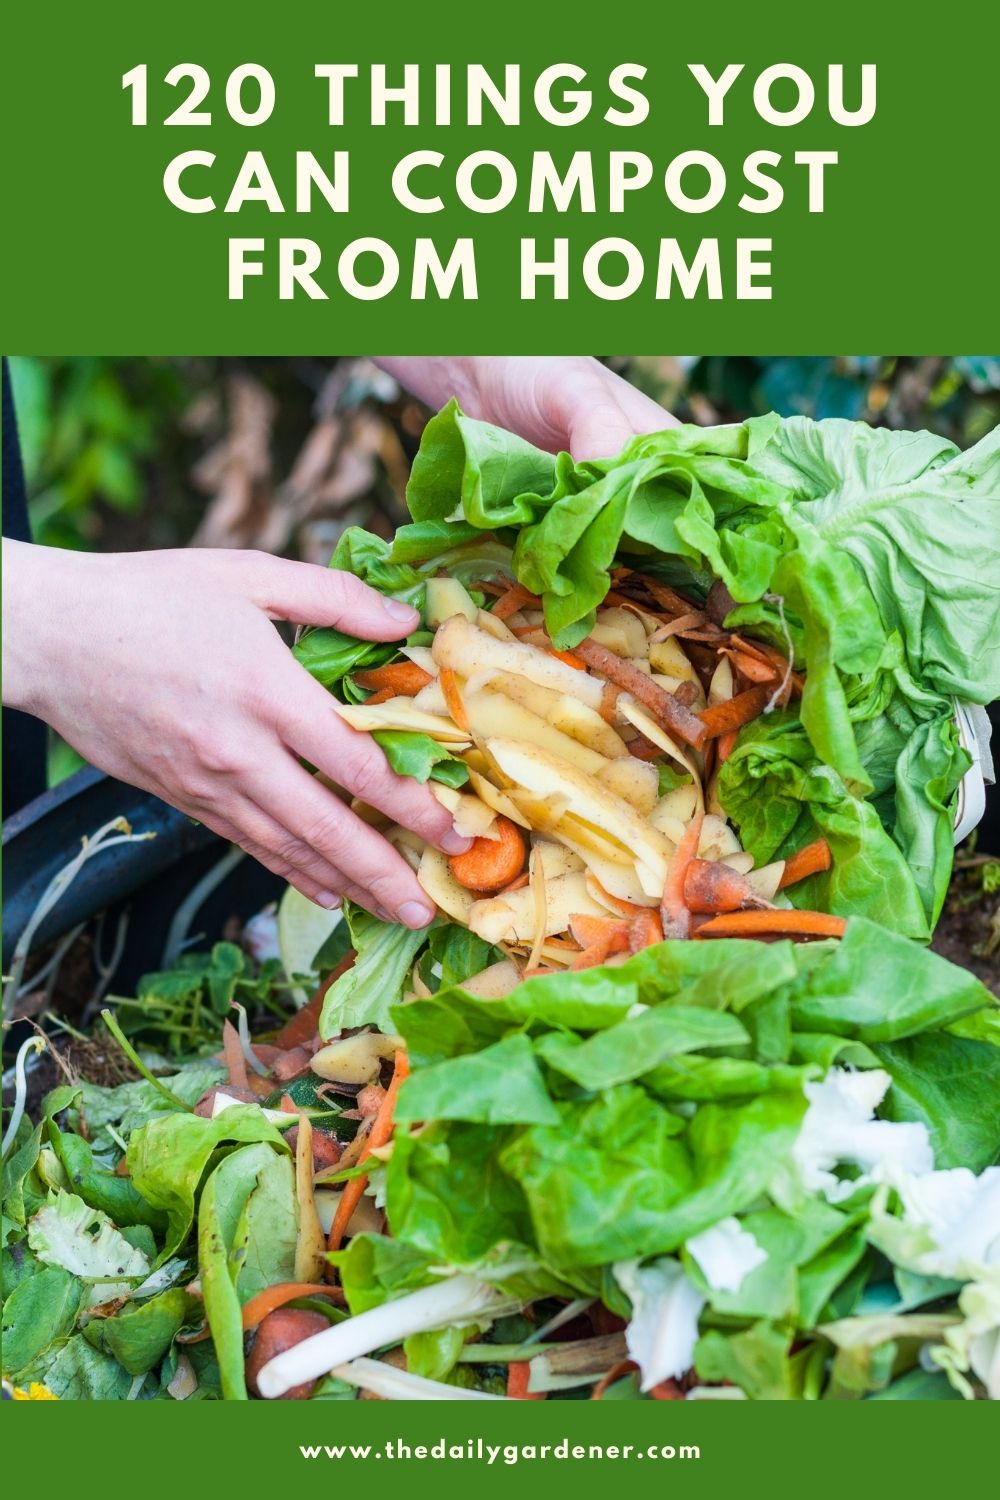 120 Things You Can Compost from Home 1